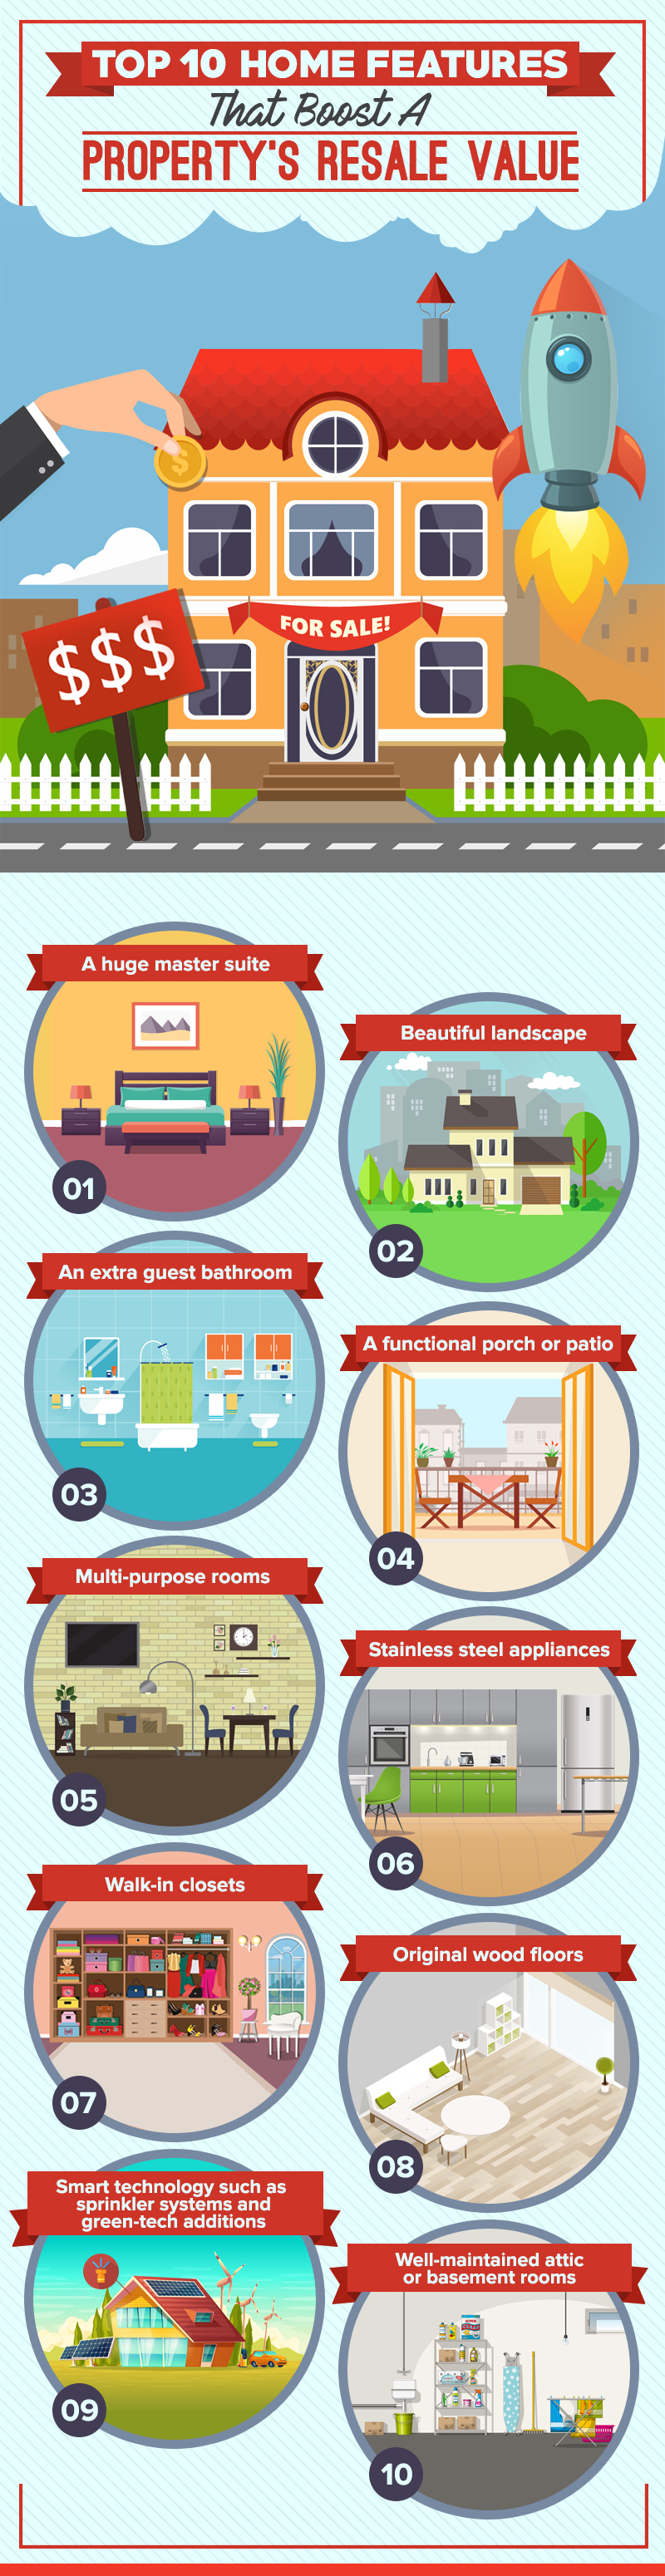 Top 10 Home Features That Boosts A Property's Resale Value